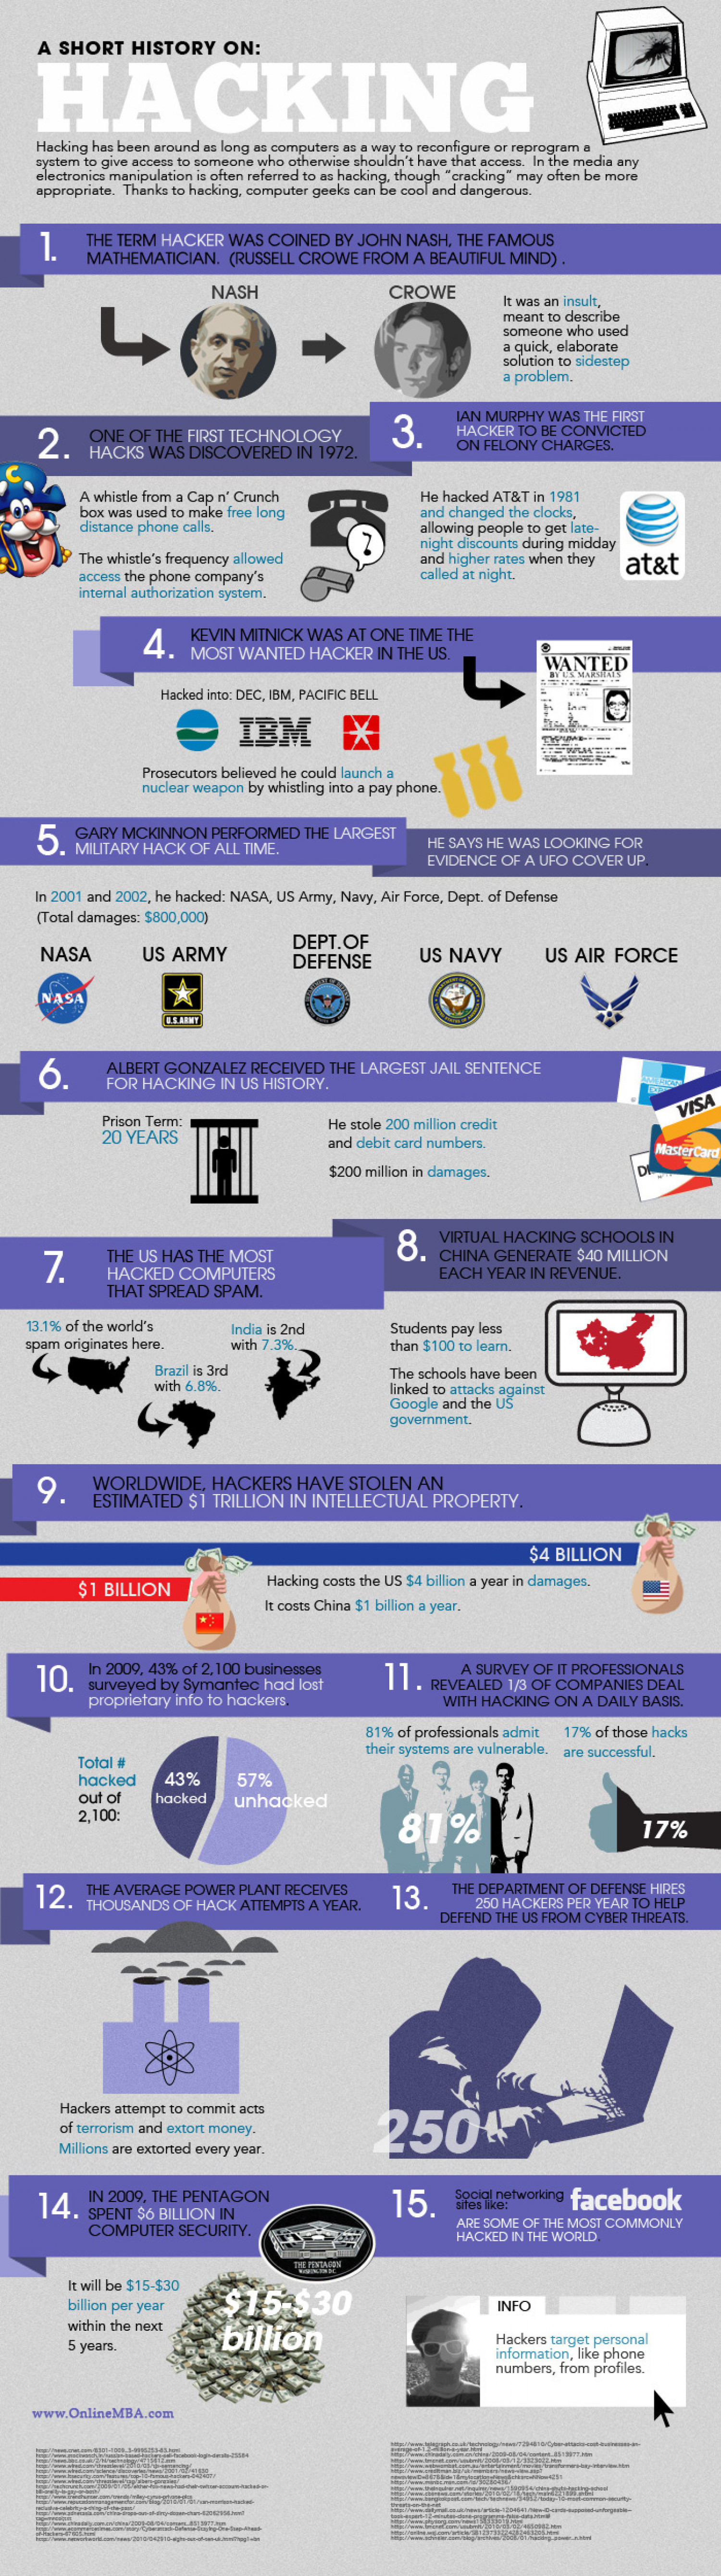 A Short History on: Hacking Infographic